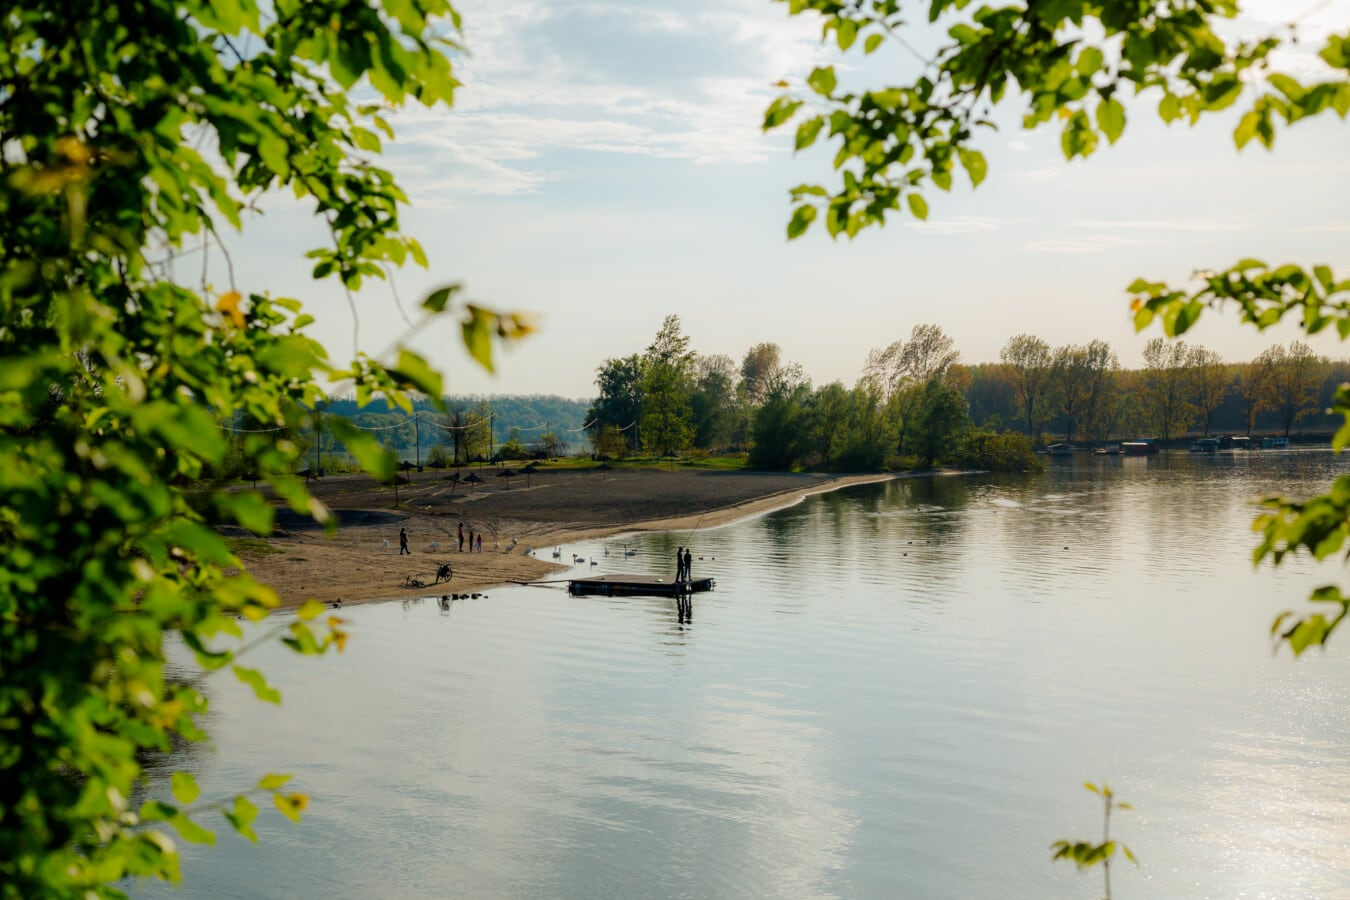 resort area, summer time, lakeside, water, reflection, nature, tree, landscape, lake, river